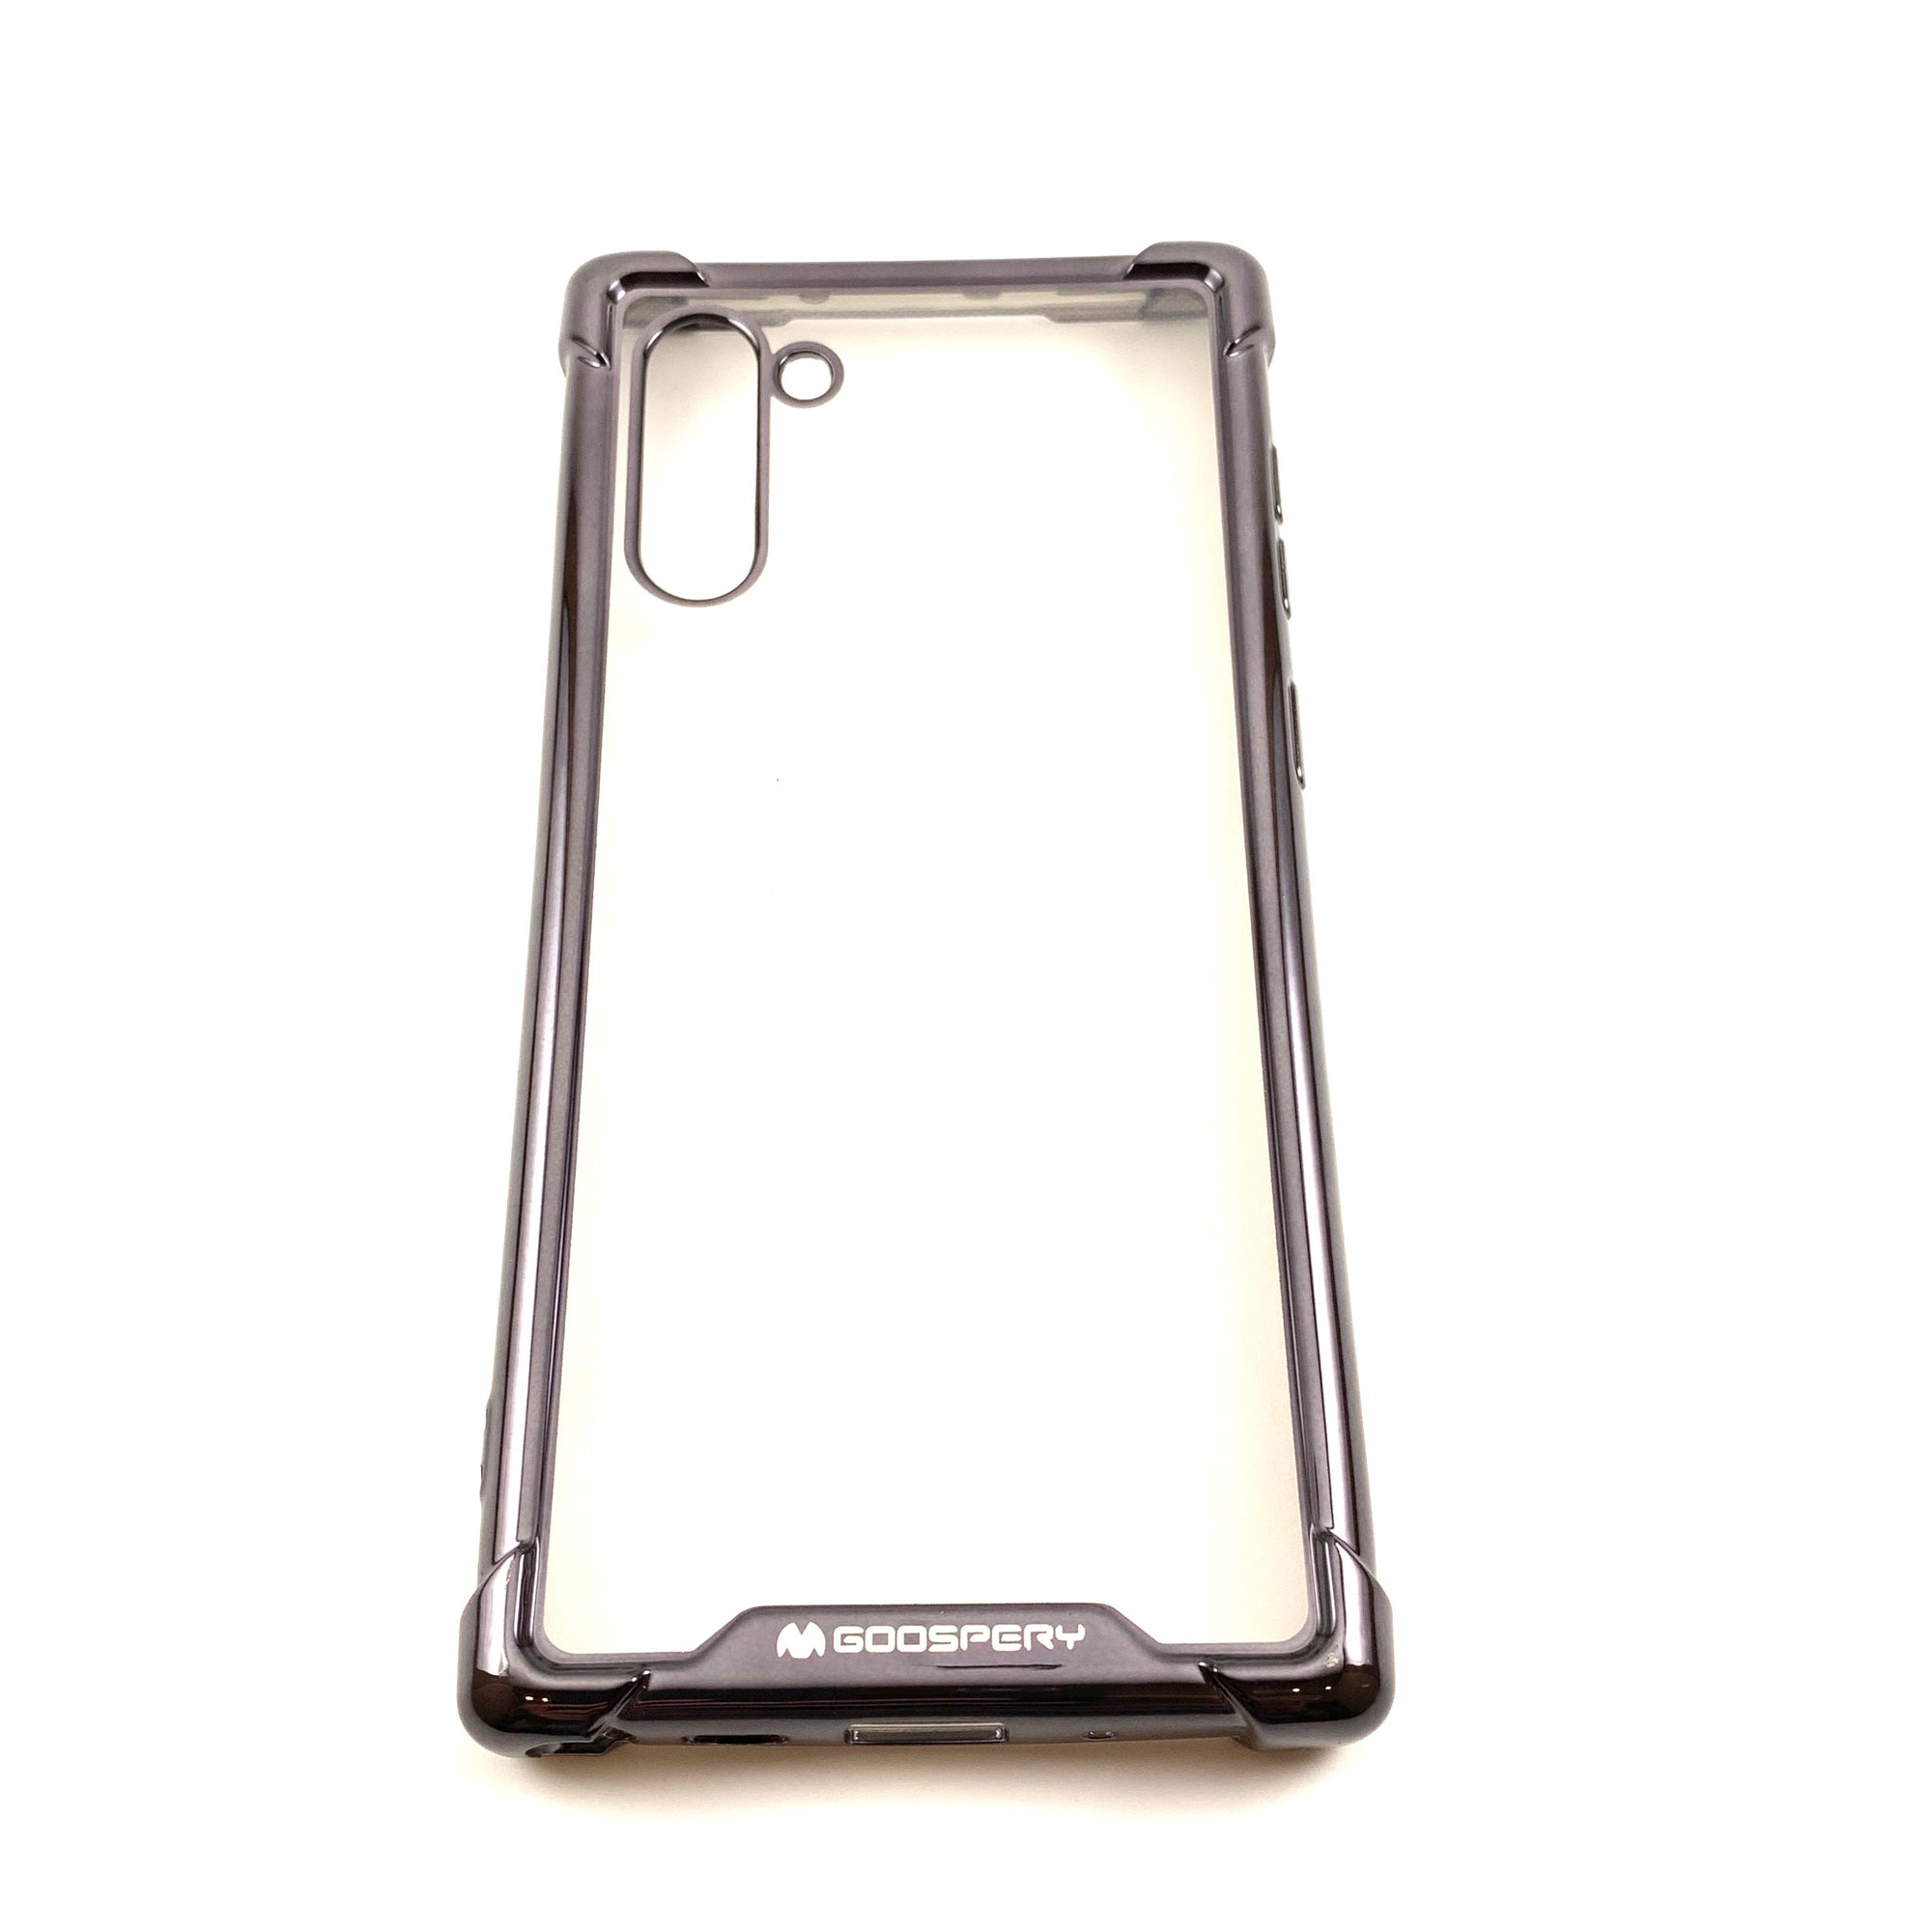 GOOSPERY Wonder Protect Case for Samsung Galaxy Note 10+ / Note 10